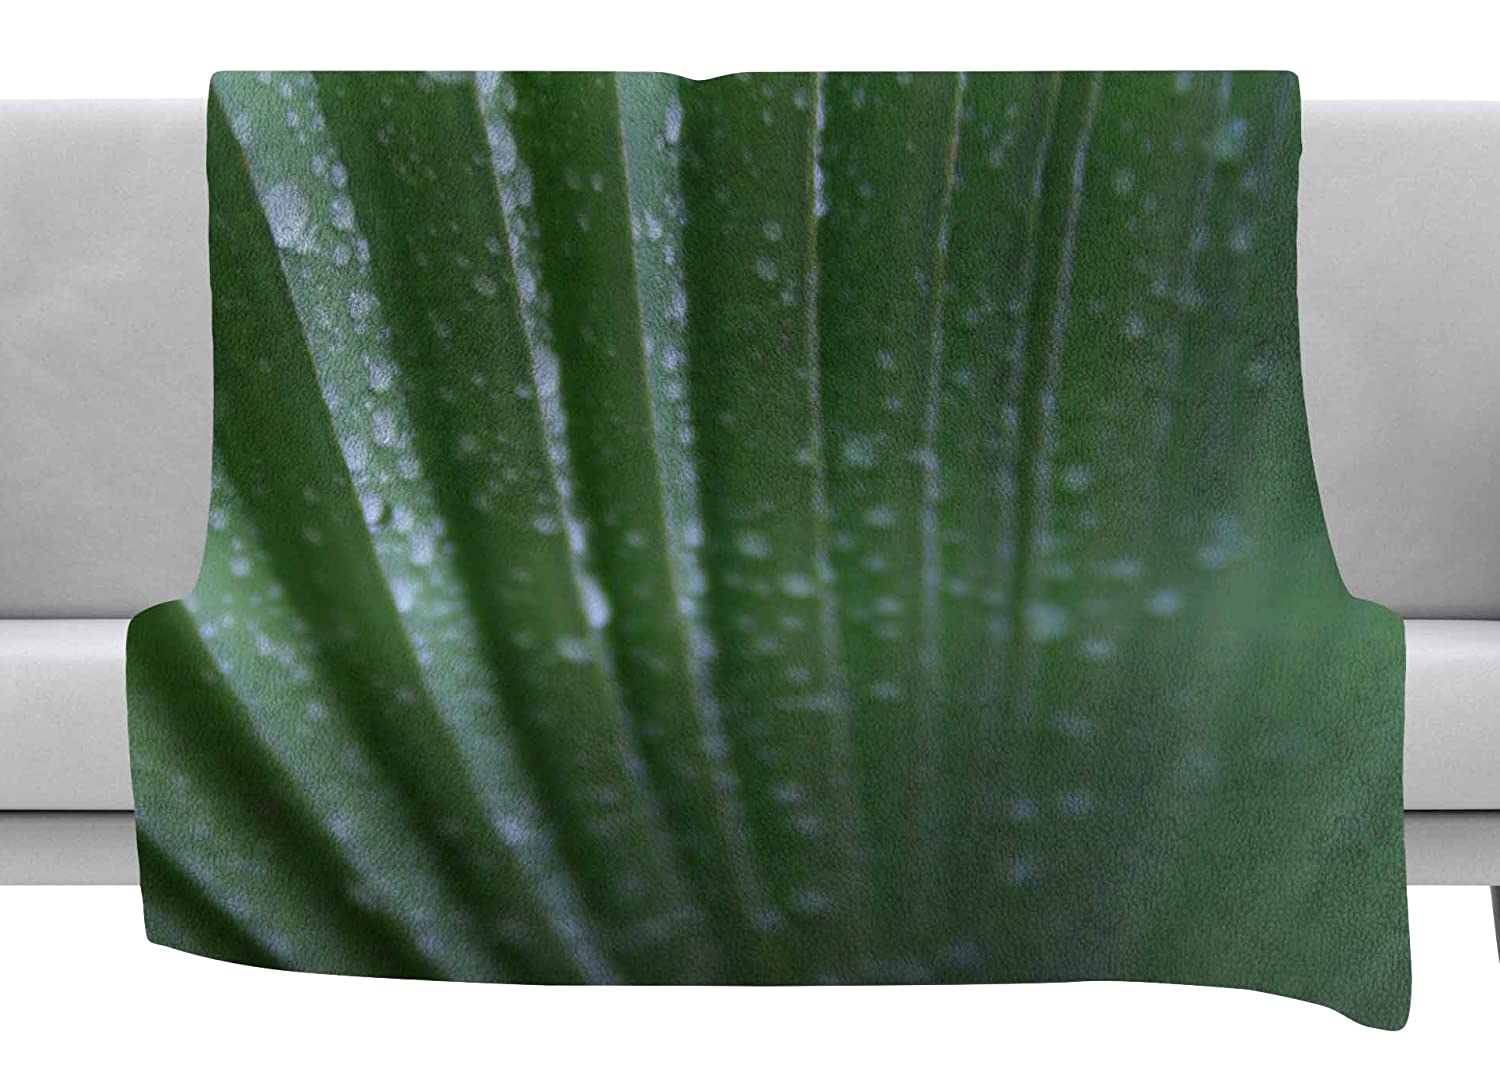 Kess InHouse Cyndi Steen Palm Frond Green Nature Throw 80 x 60 Fleece Blanket